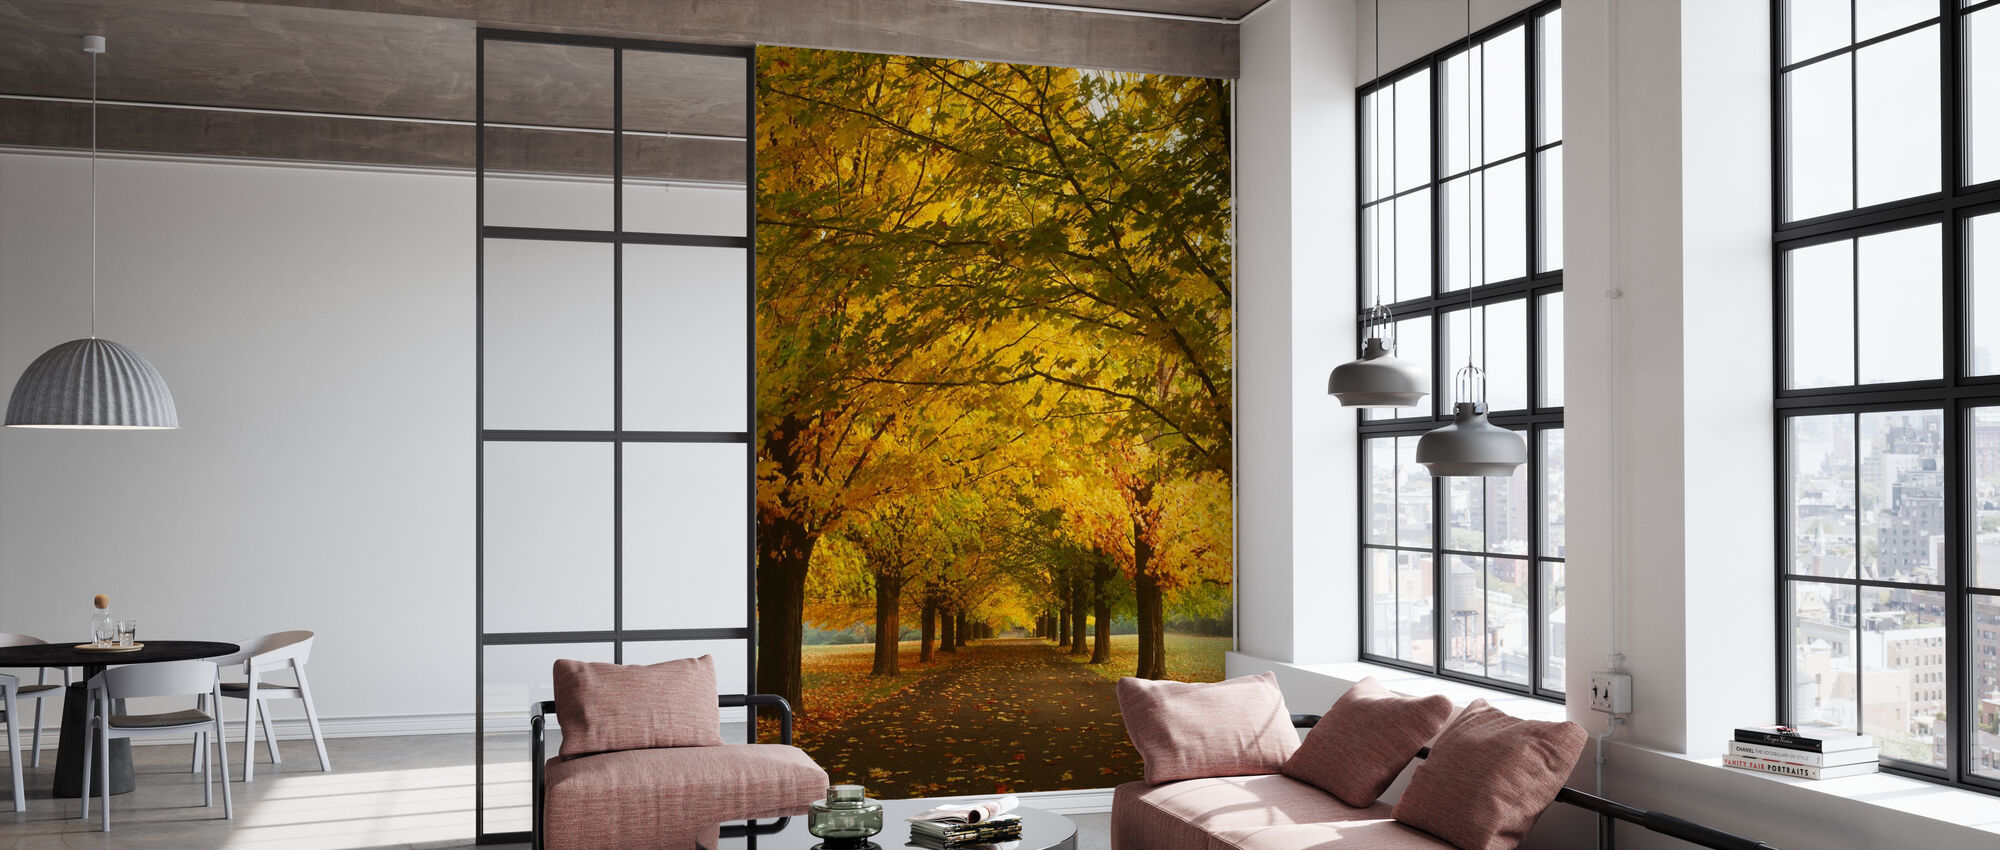 Yellow Sugar Maple Alley - Wallpaper - Office